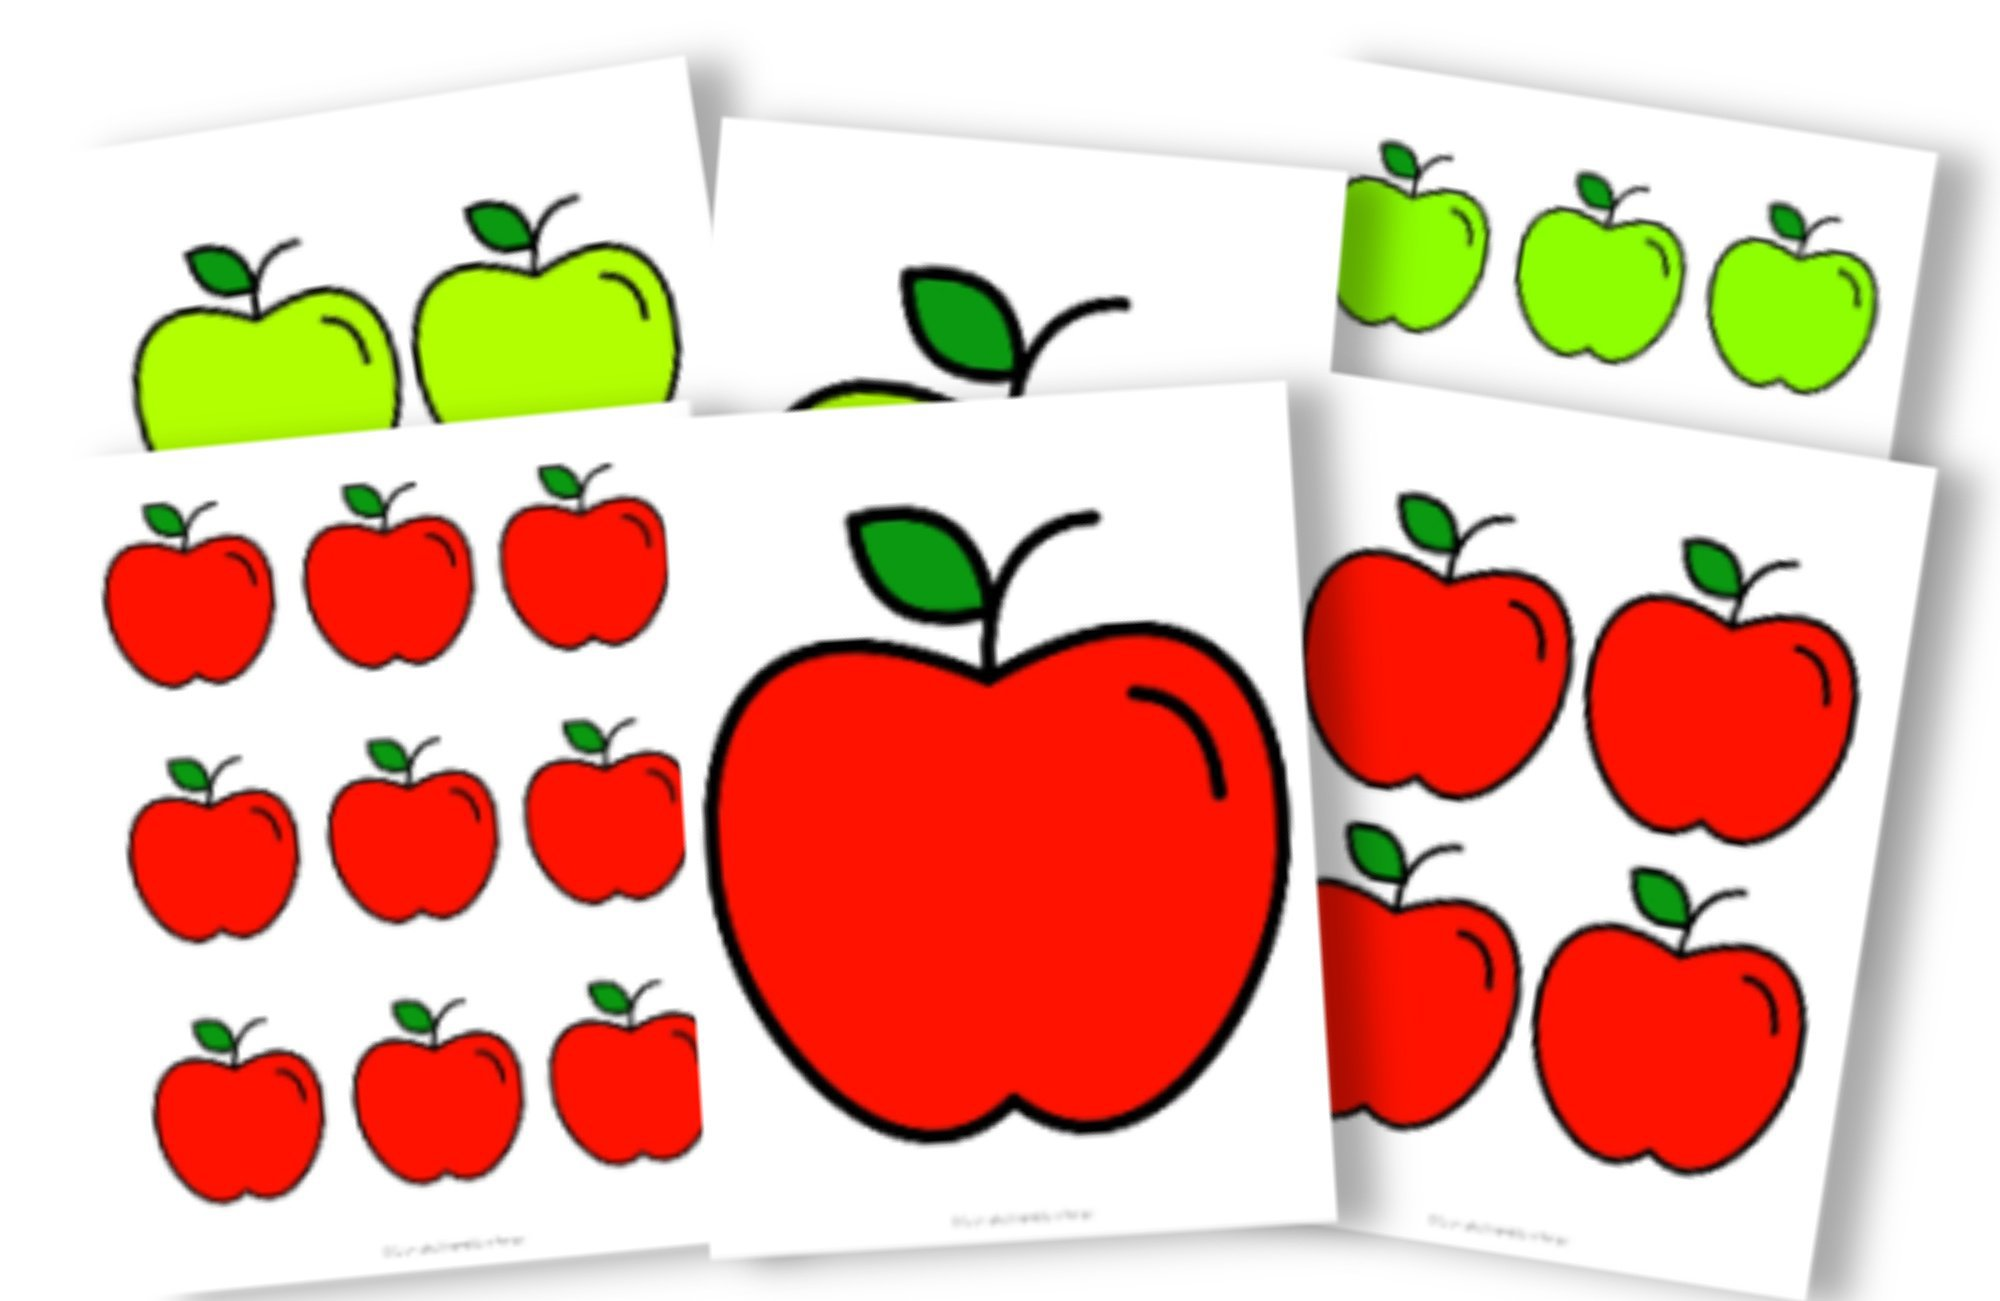 Free Printable Full Colored Apple Template for Fall Crafts, Autumn Apple Crafts, Teacher Appreciation Crafts